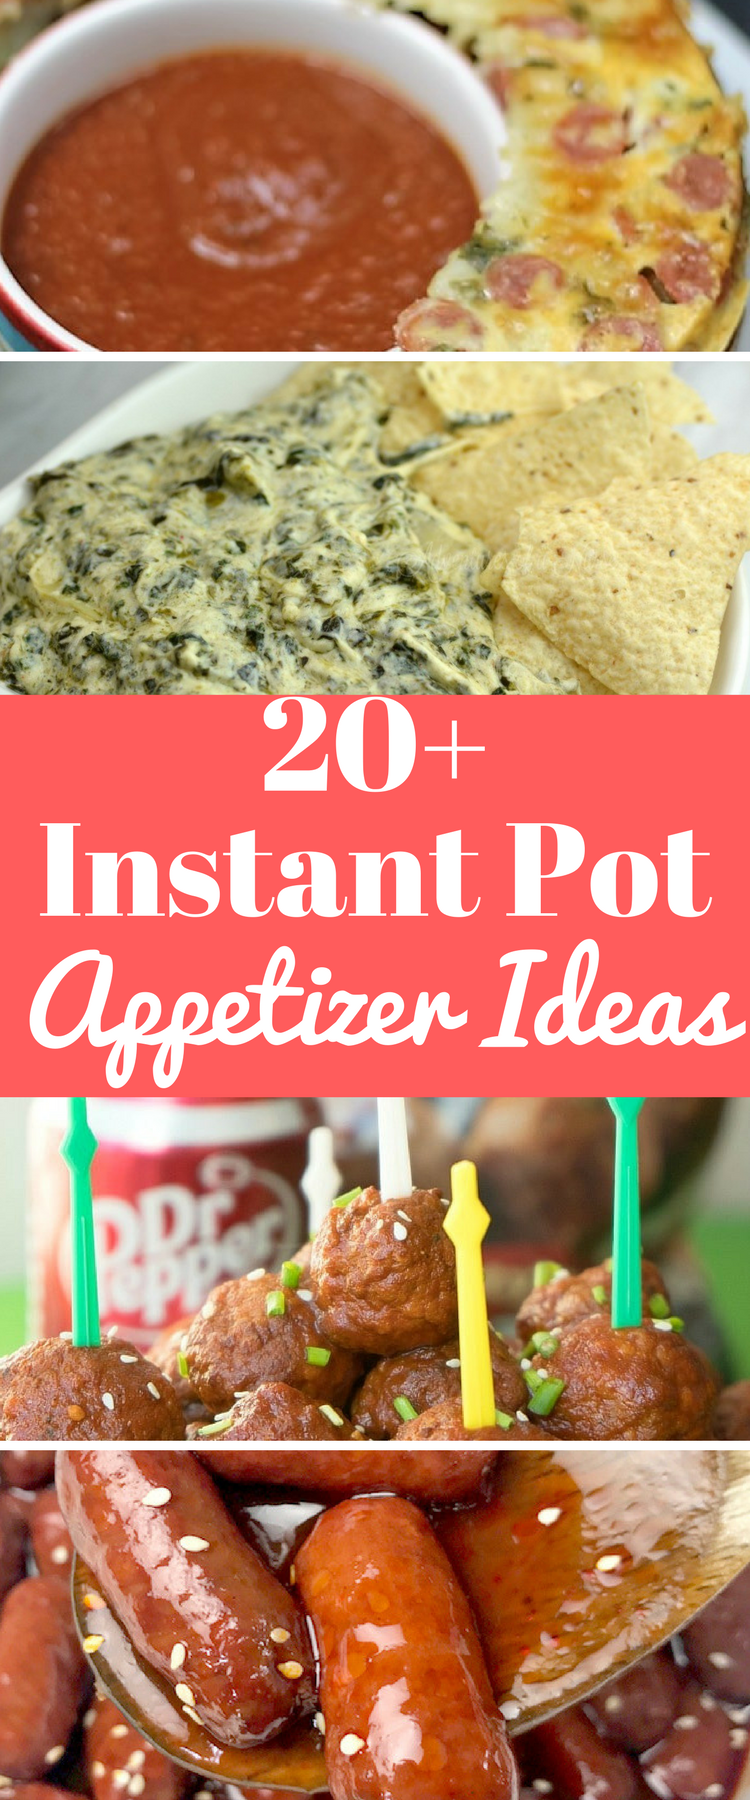 20+ Crowd Pleasing Instant Pot Appetizer Recipes